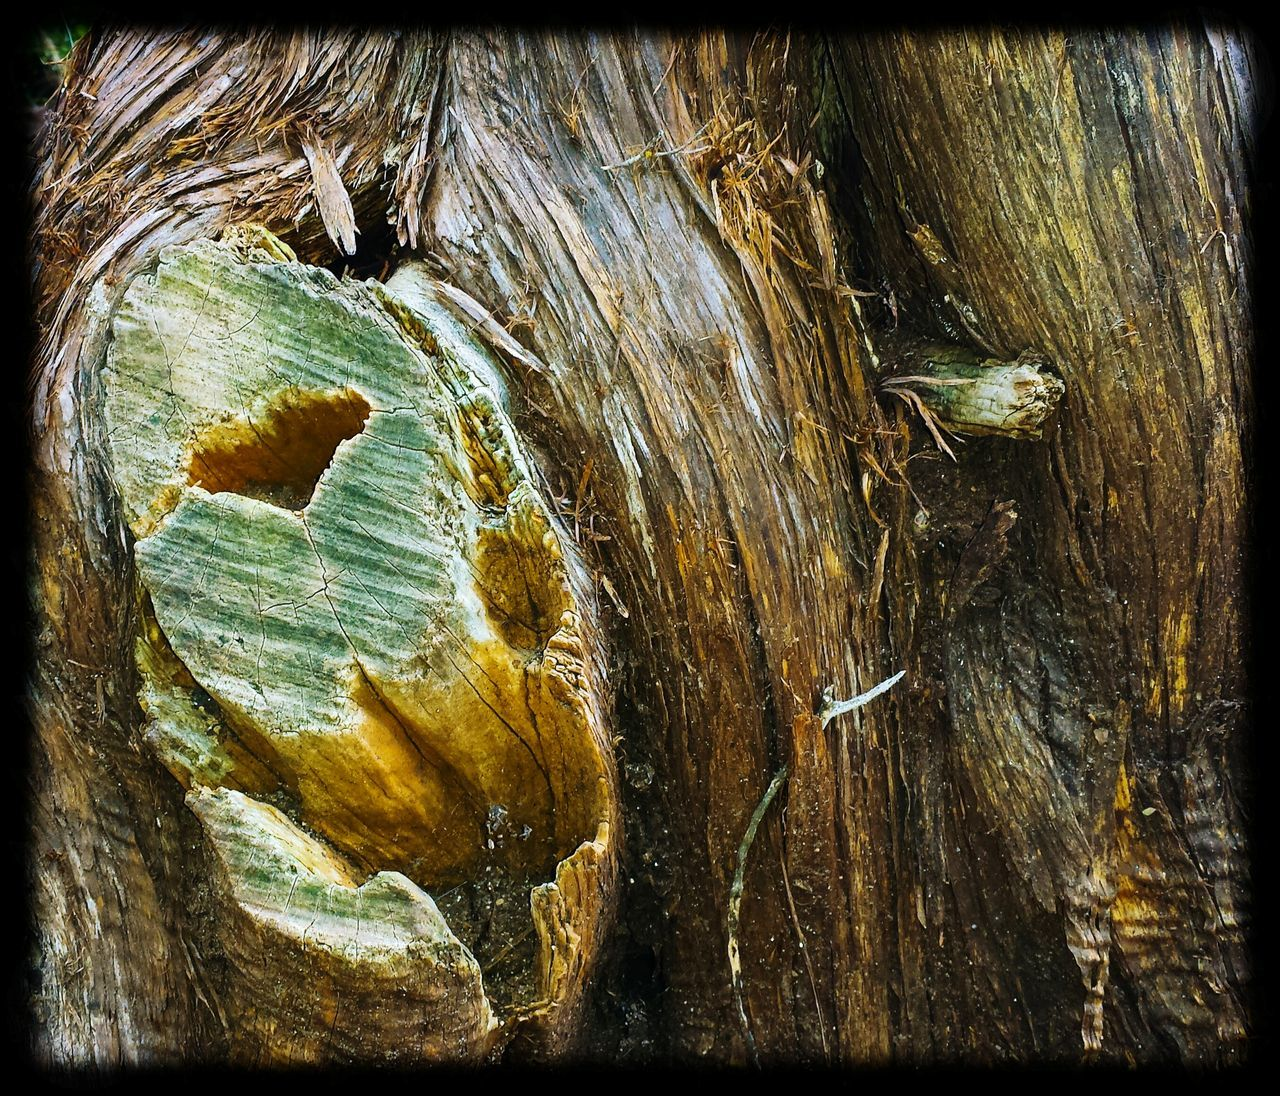 no people, close-up, day, nature, tree trunk, textured, outdoors, tree